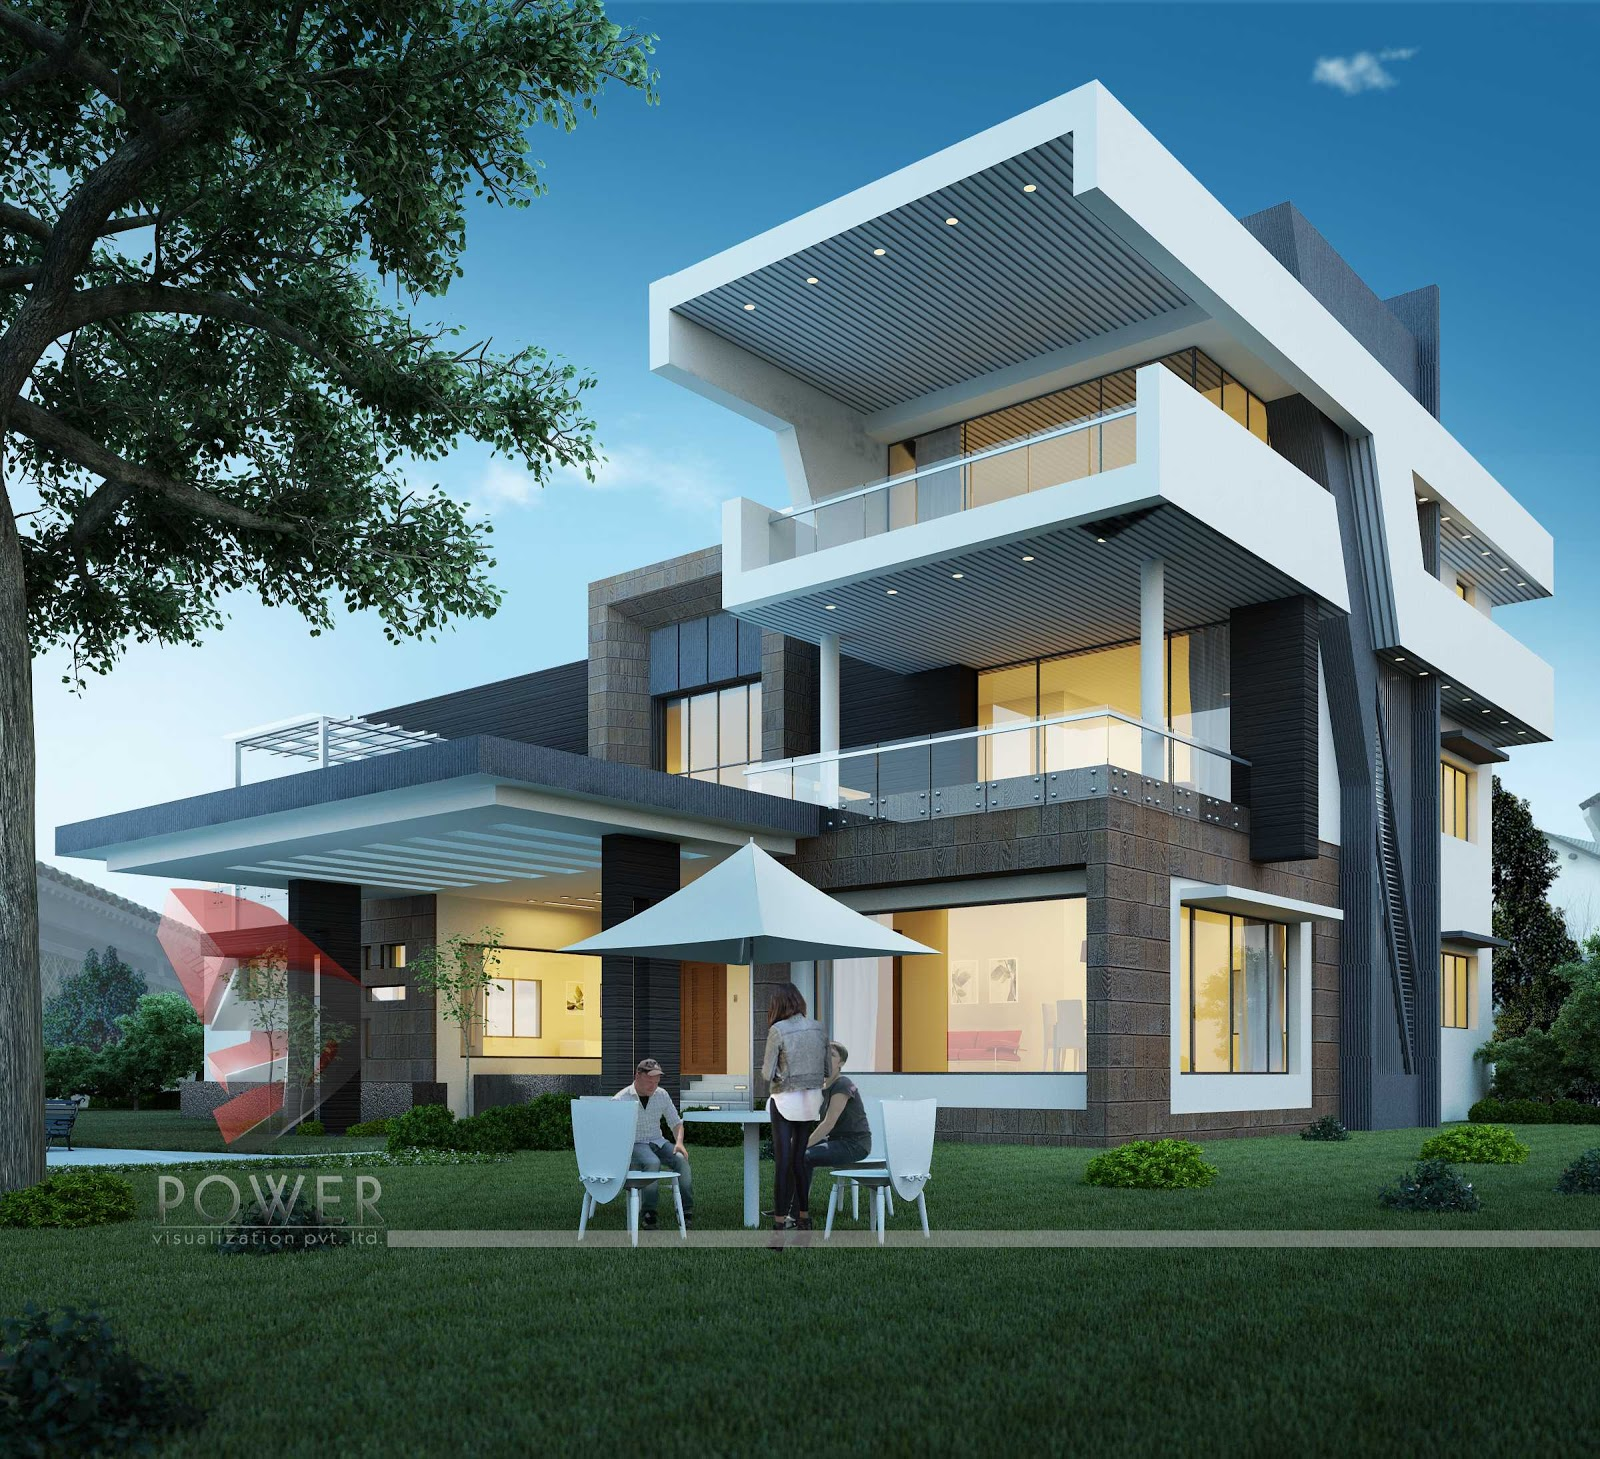 Ultra modern home designs home designs october 2012 Ultra modern house